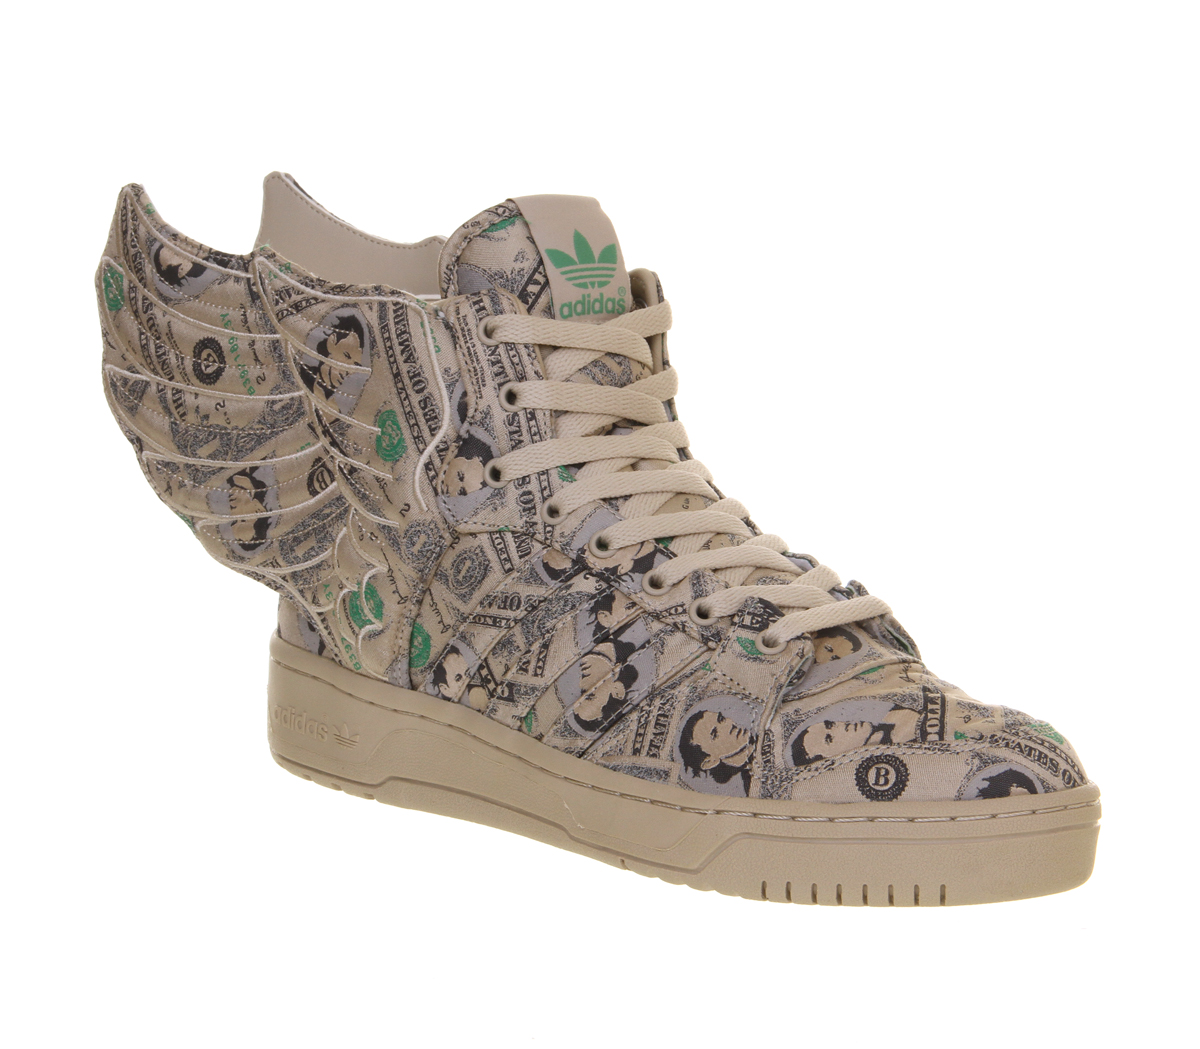 Adidas Jeremy Scott Js Wings 2.0 Money - Unisex Sports